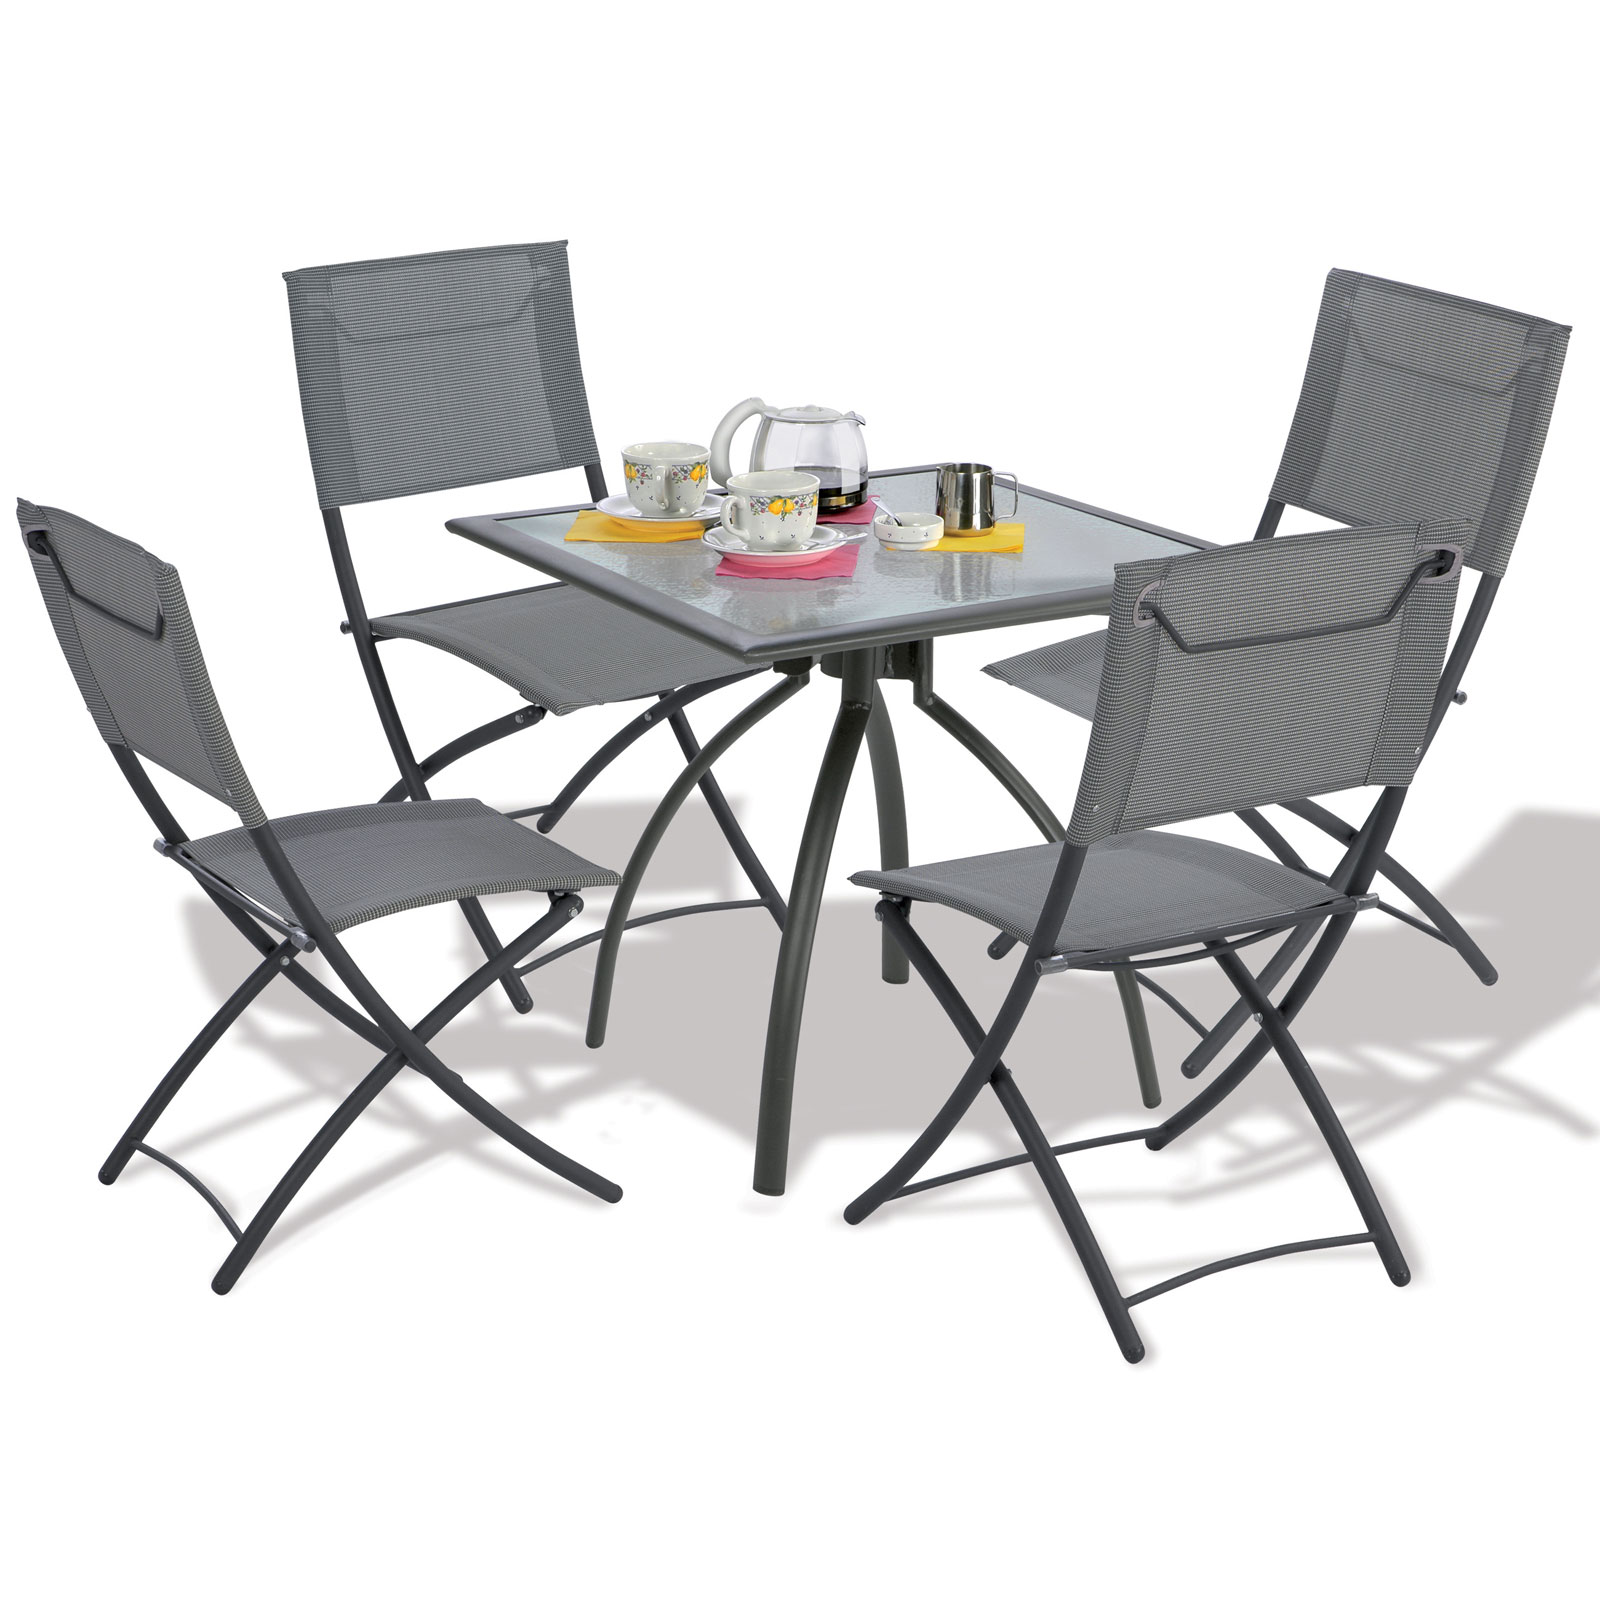 Table Et Chaise De Jardin Aluminium Solde Table Et Chaise De Jardin Table De Jardin Aluminium Gris